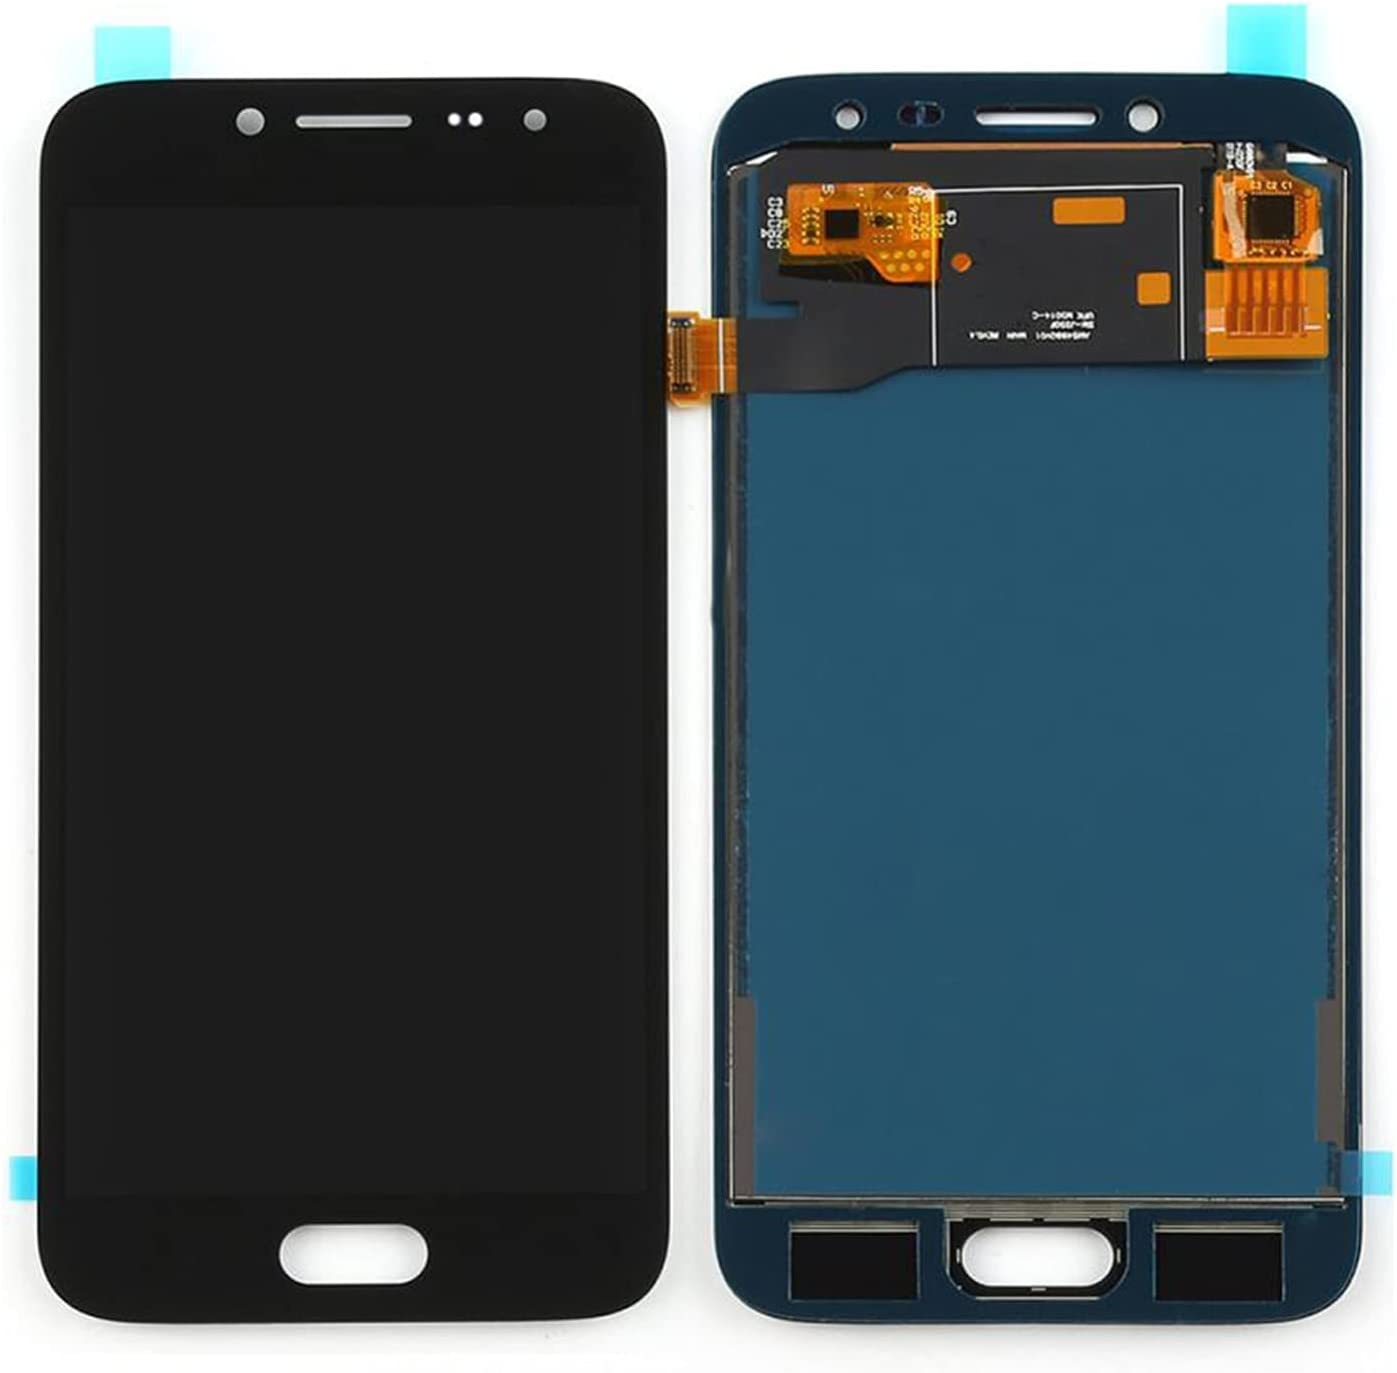 Newwiee half LCD sold out Display Touch Screen Phone Digitizer Adjustab Mobile